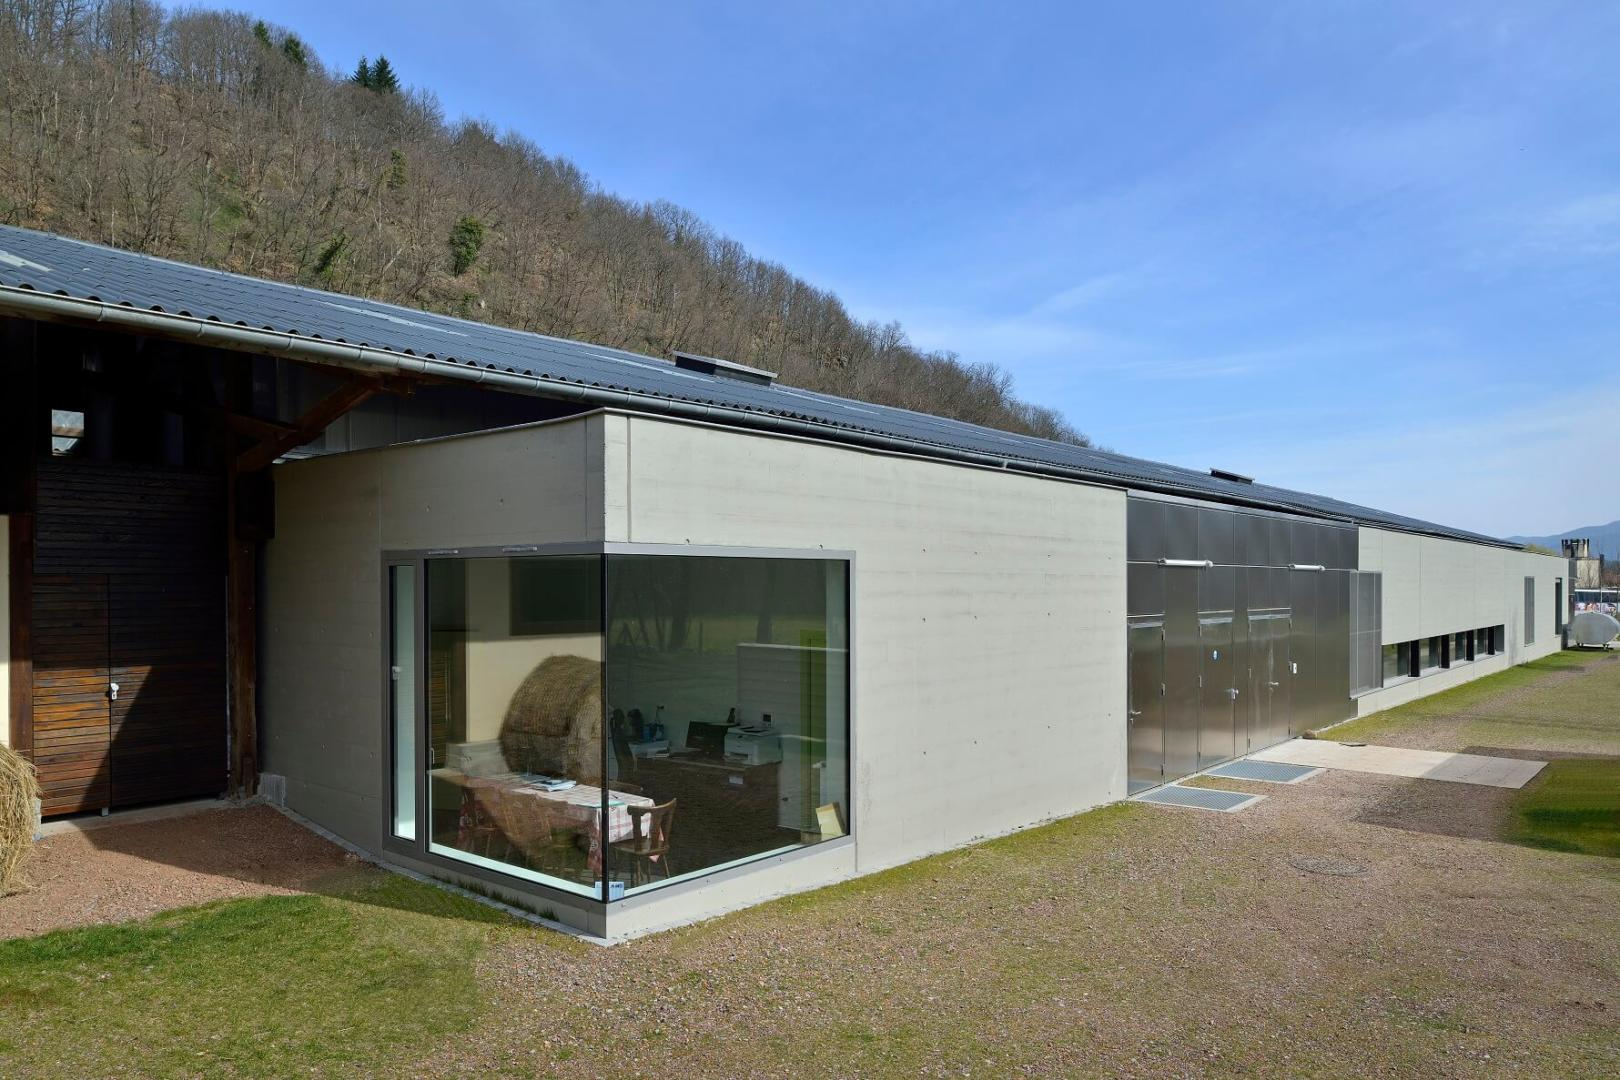 Architecture atelier production fromage gunsbach aea - La maison du fromage saint nectaire ...